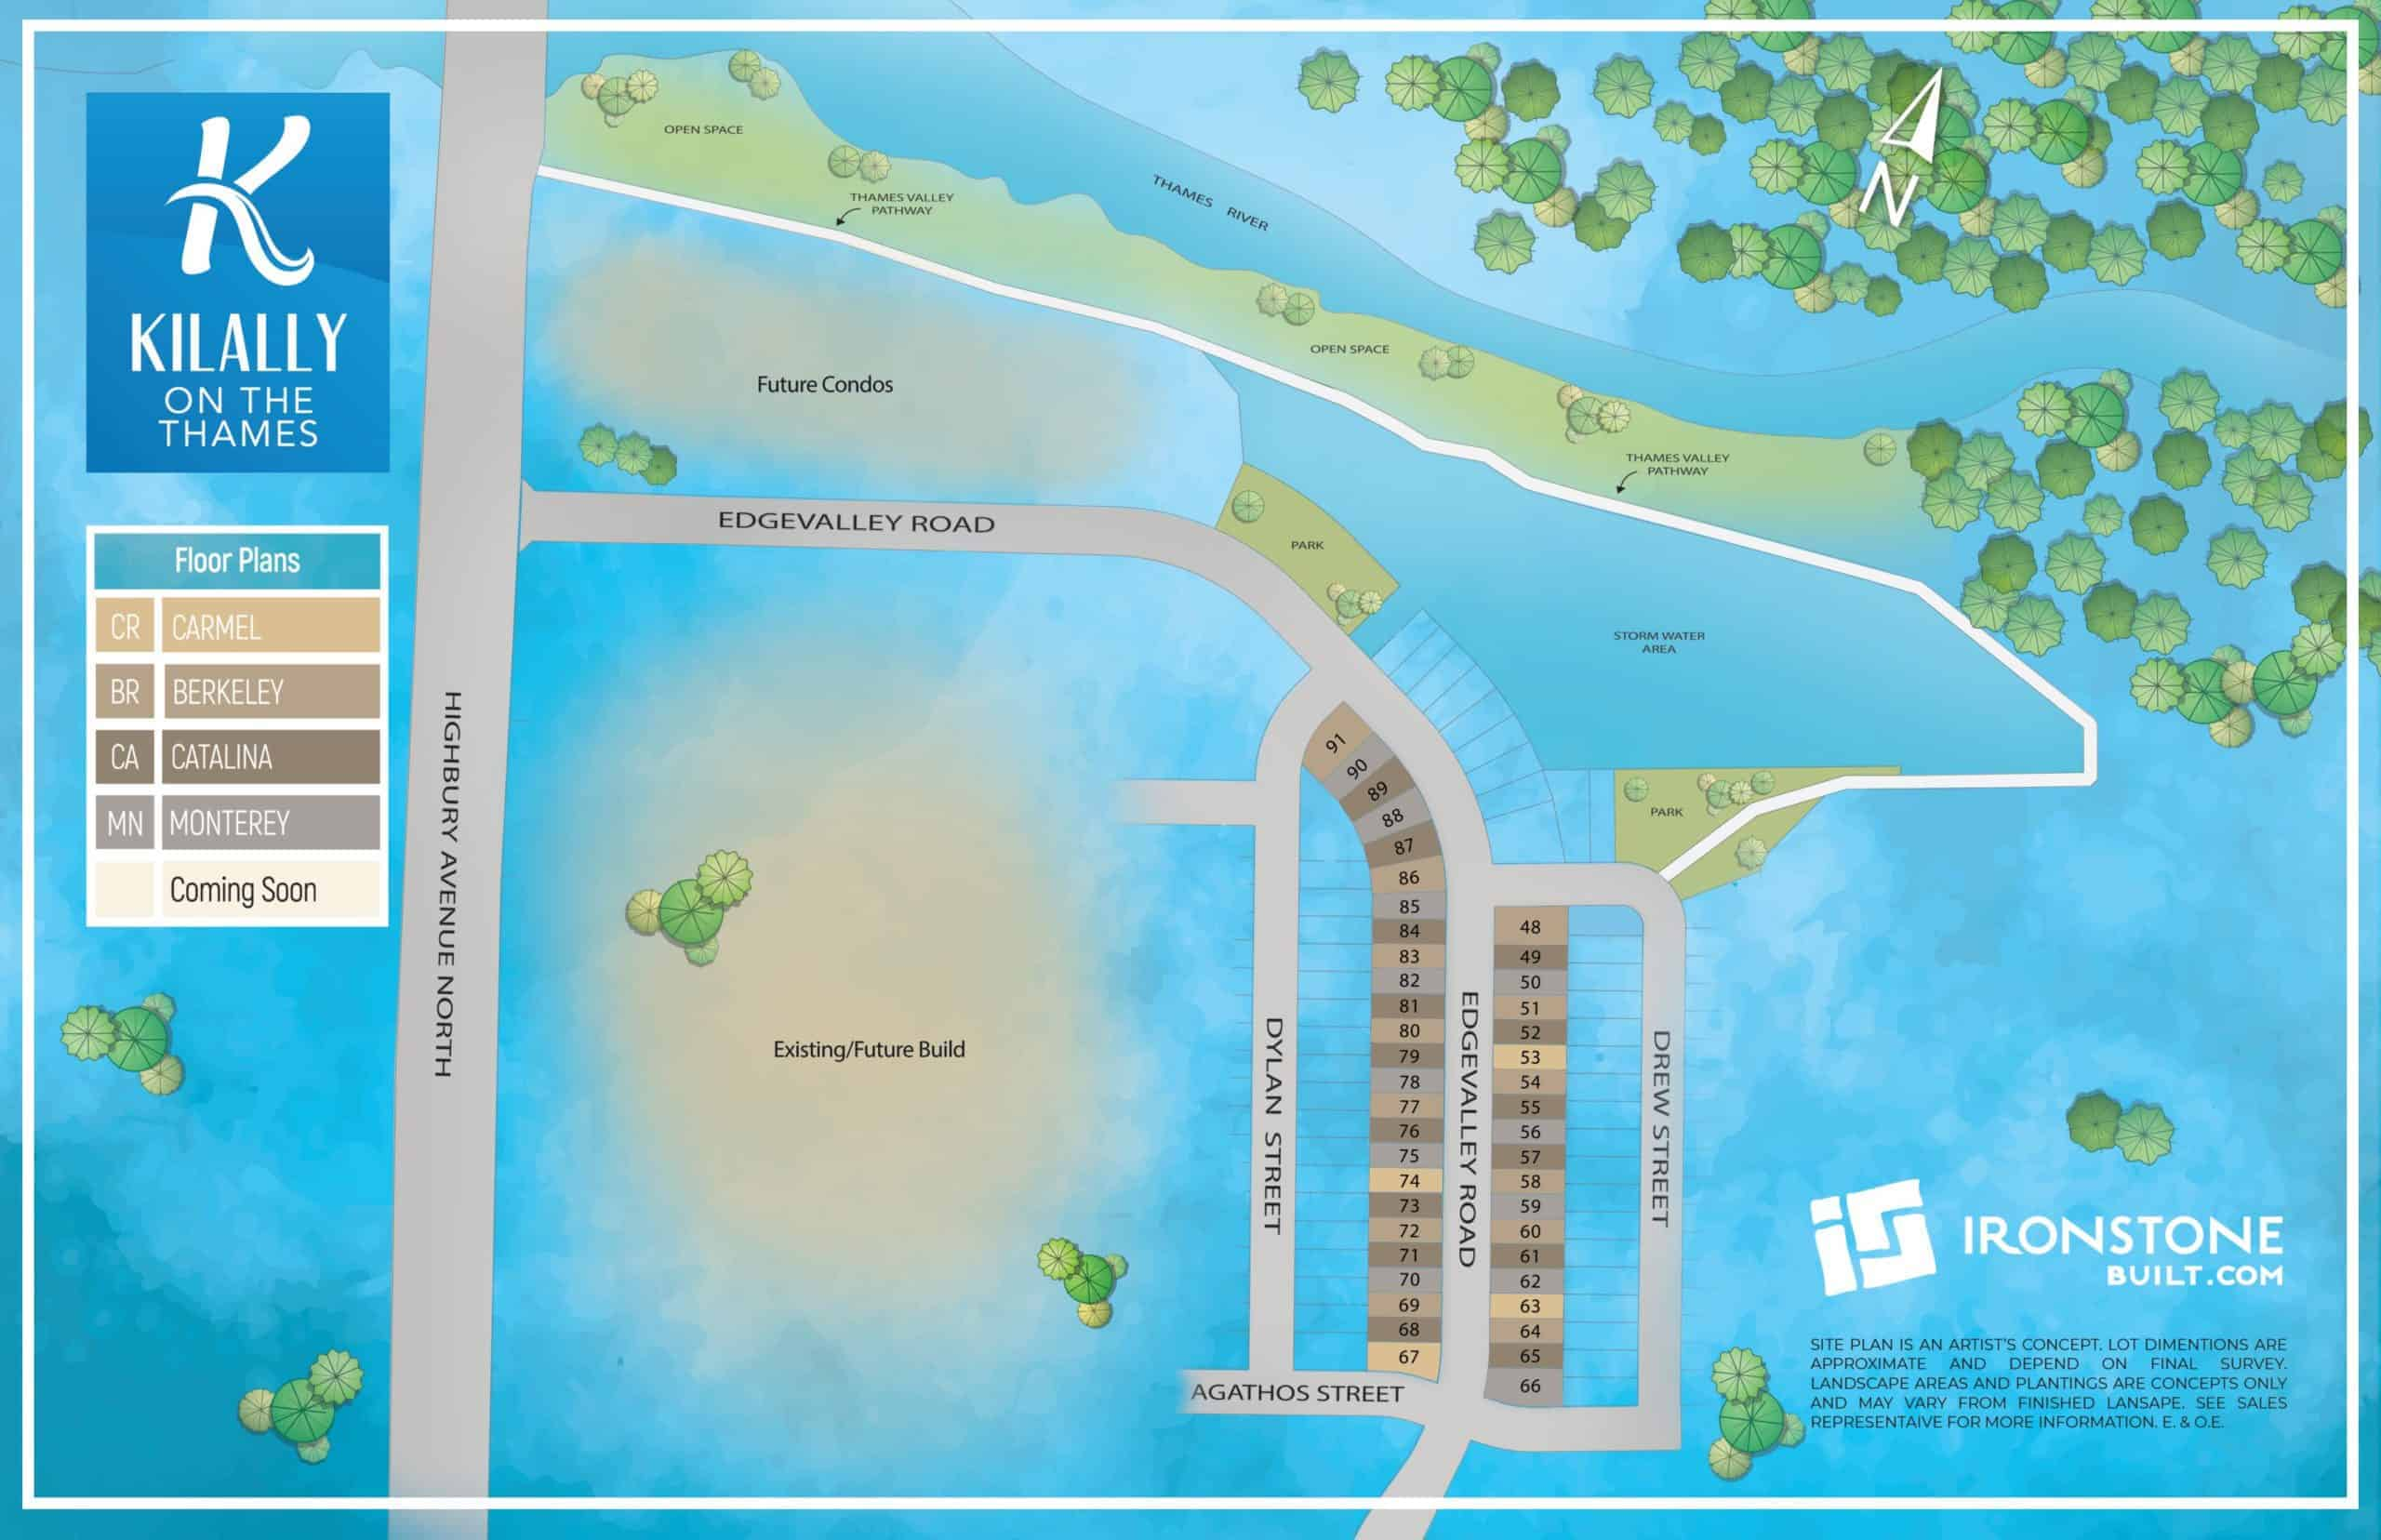 Kilally-on-the-Thames-Site-Map-2020